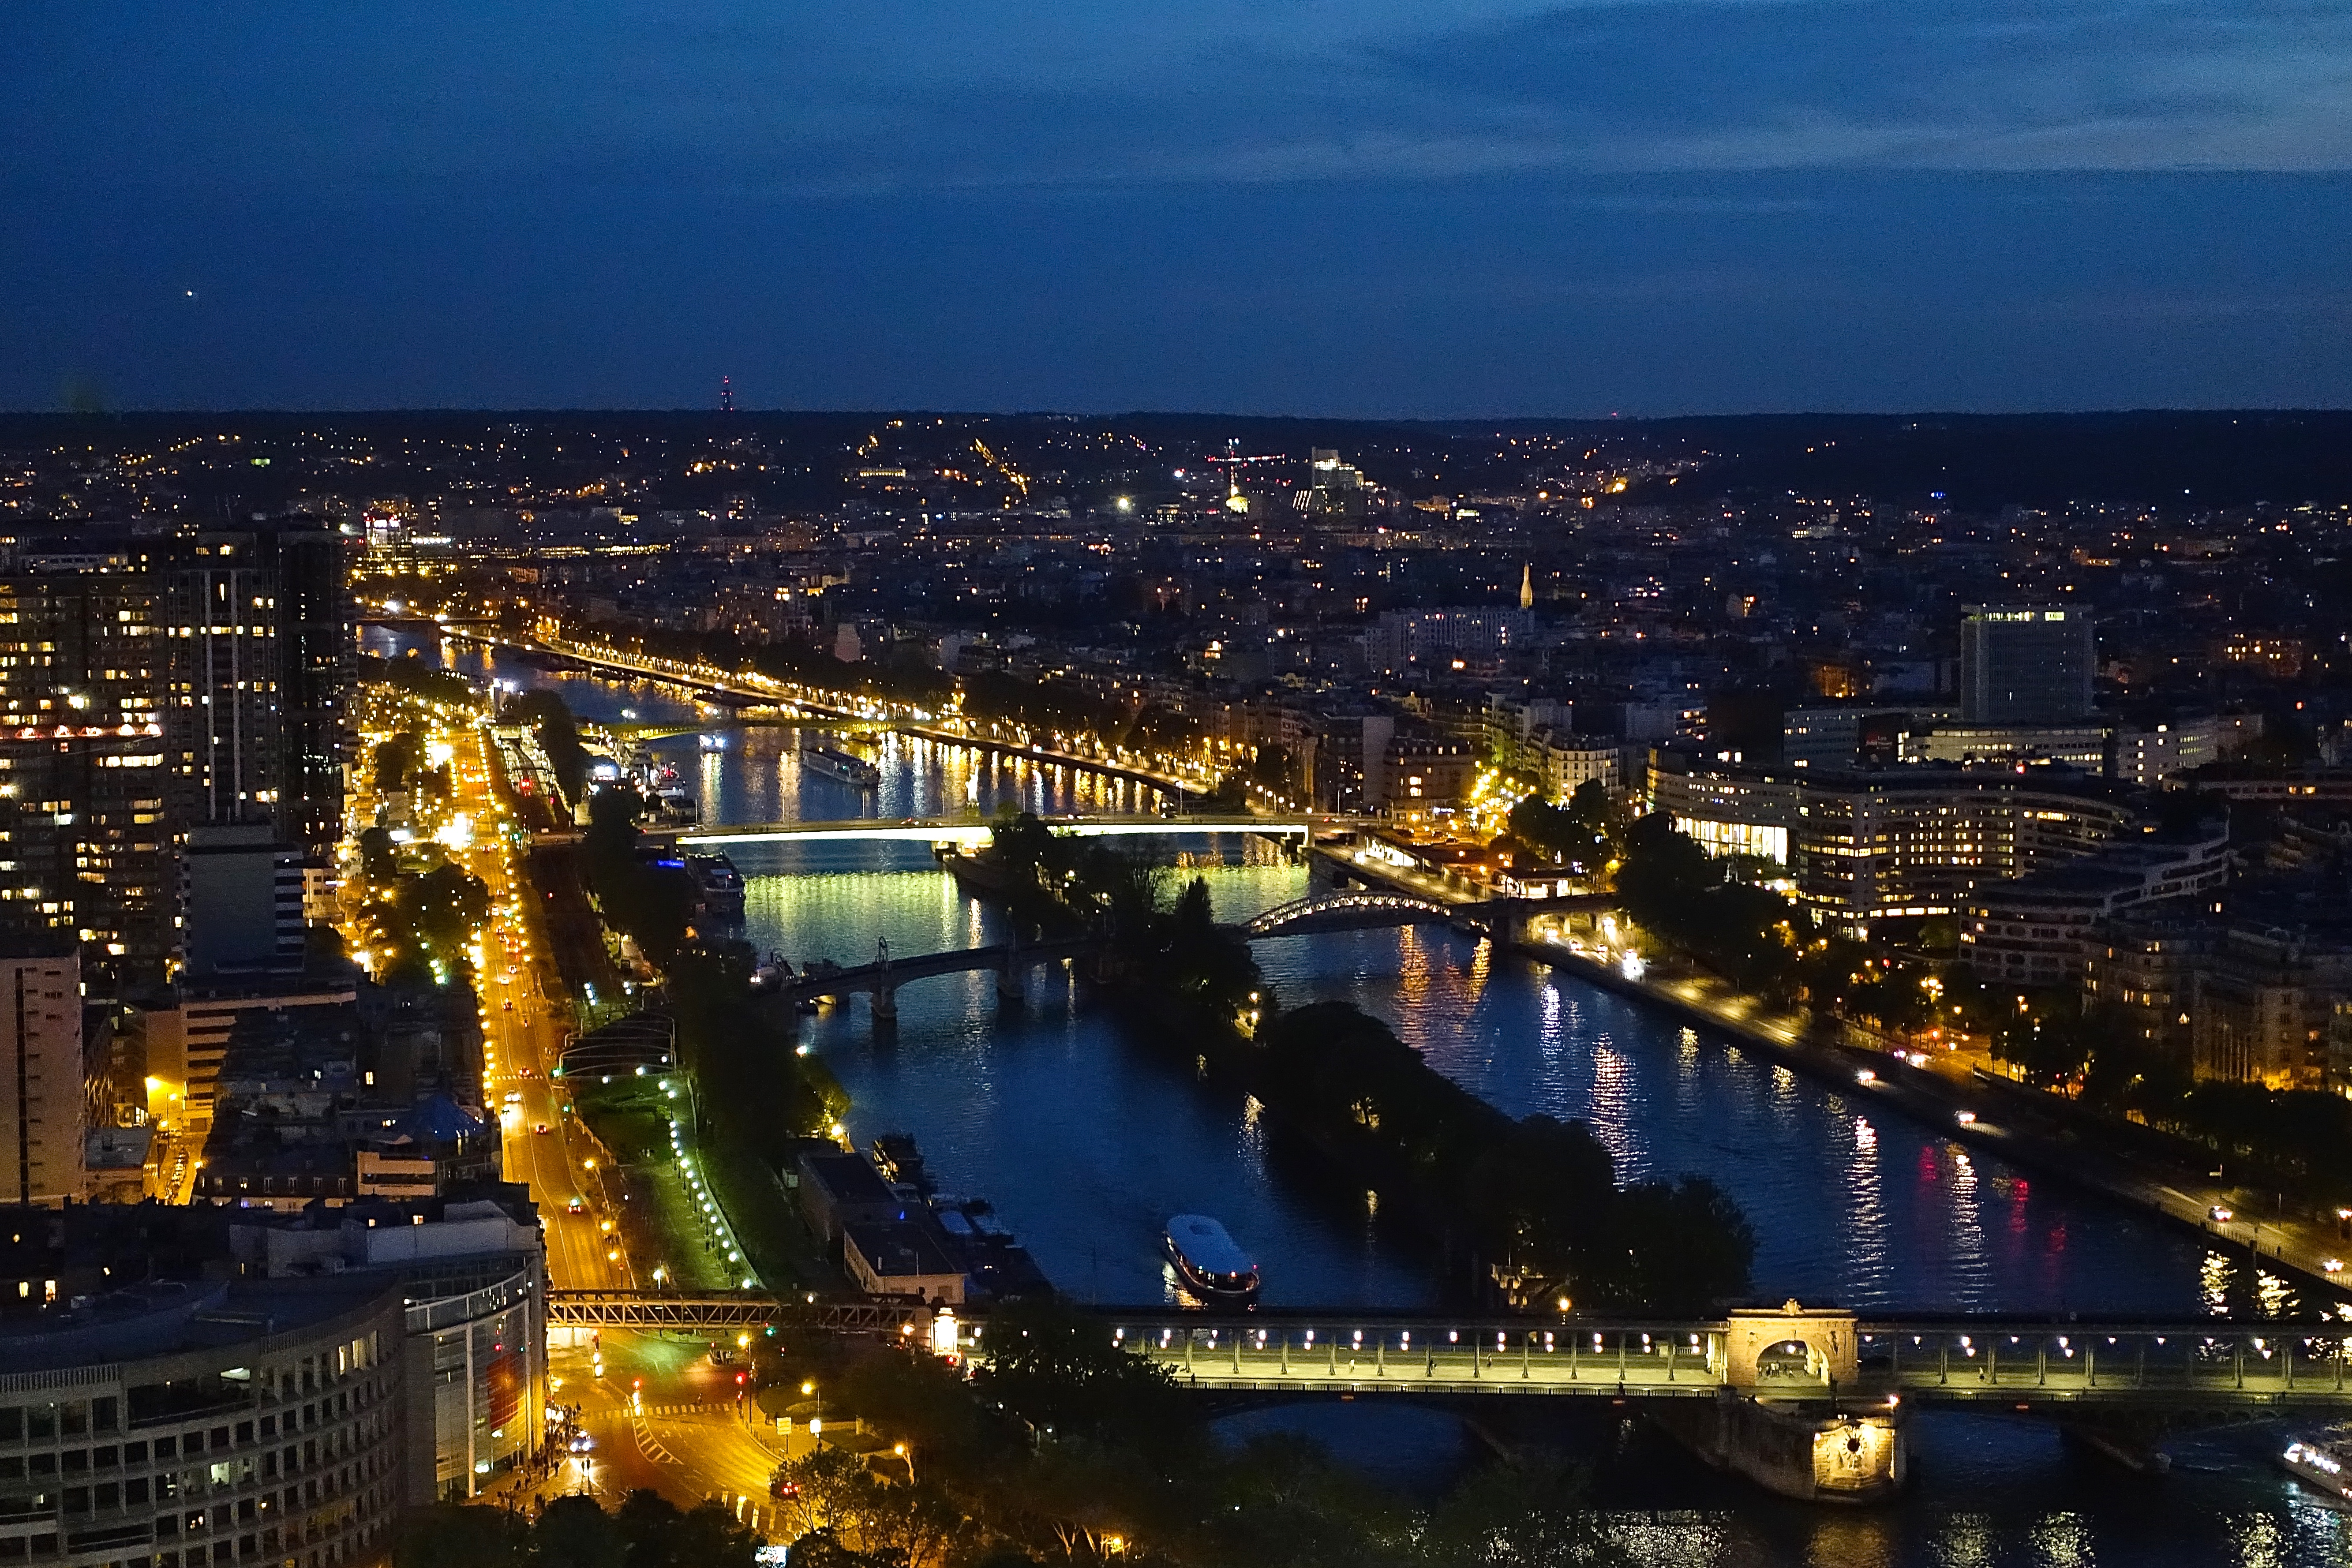 Seine River at Night from Eiffel Tower